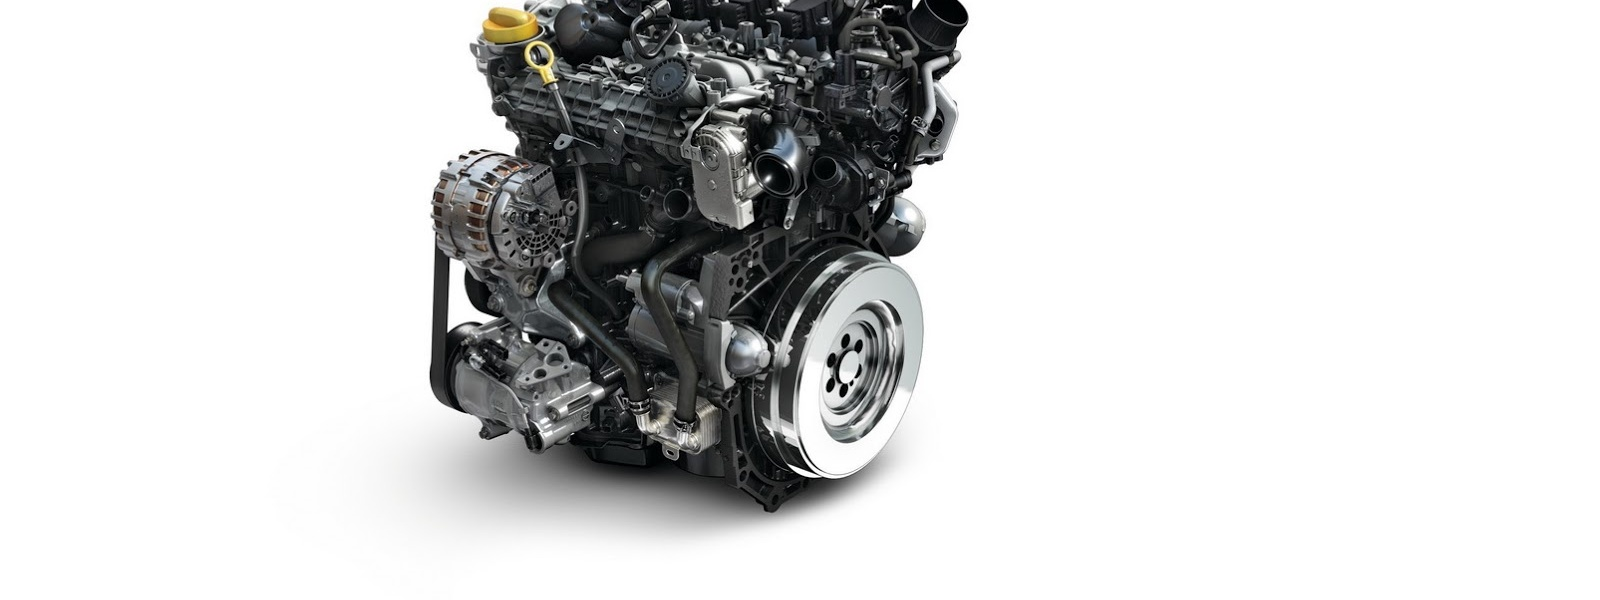 renault-new-gen-petrol-engine-1.jpg